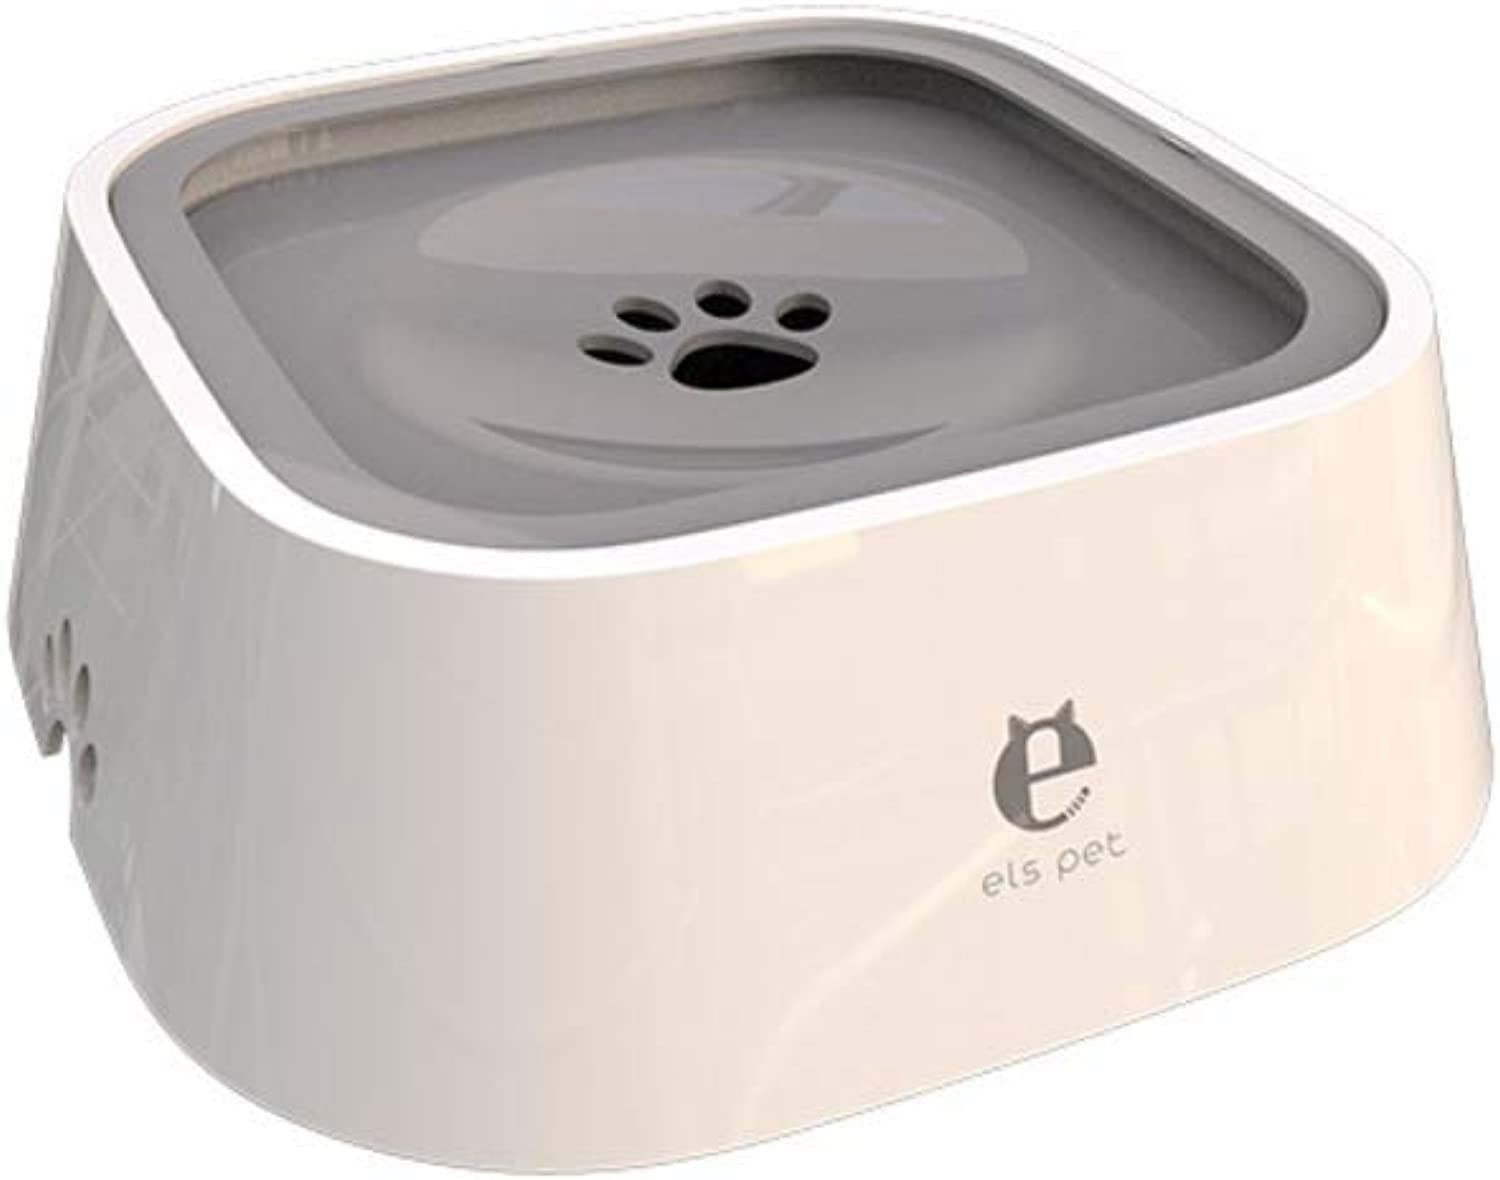 Pet Water Bowl, Dog Food Splash Slip Pet SuppliesC